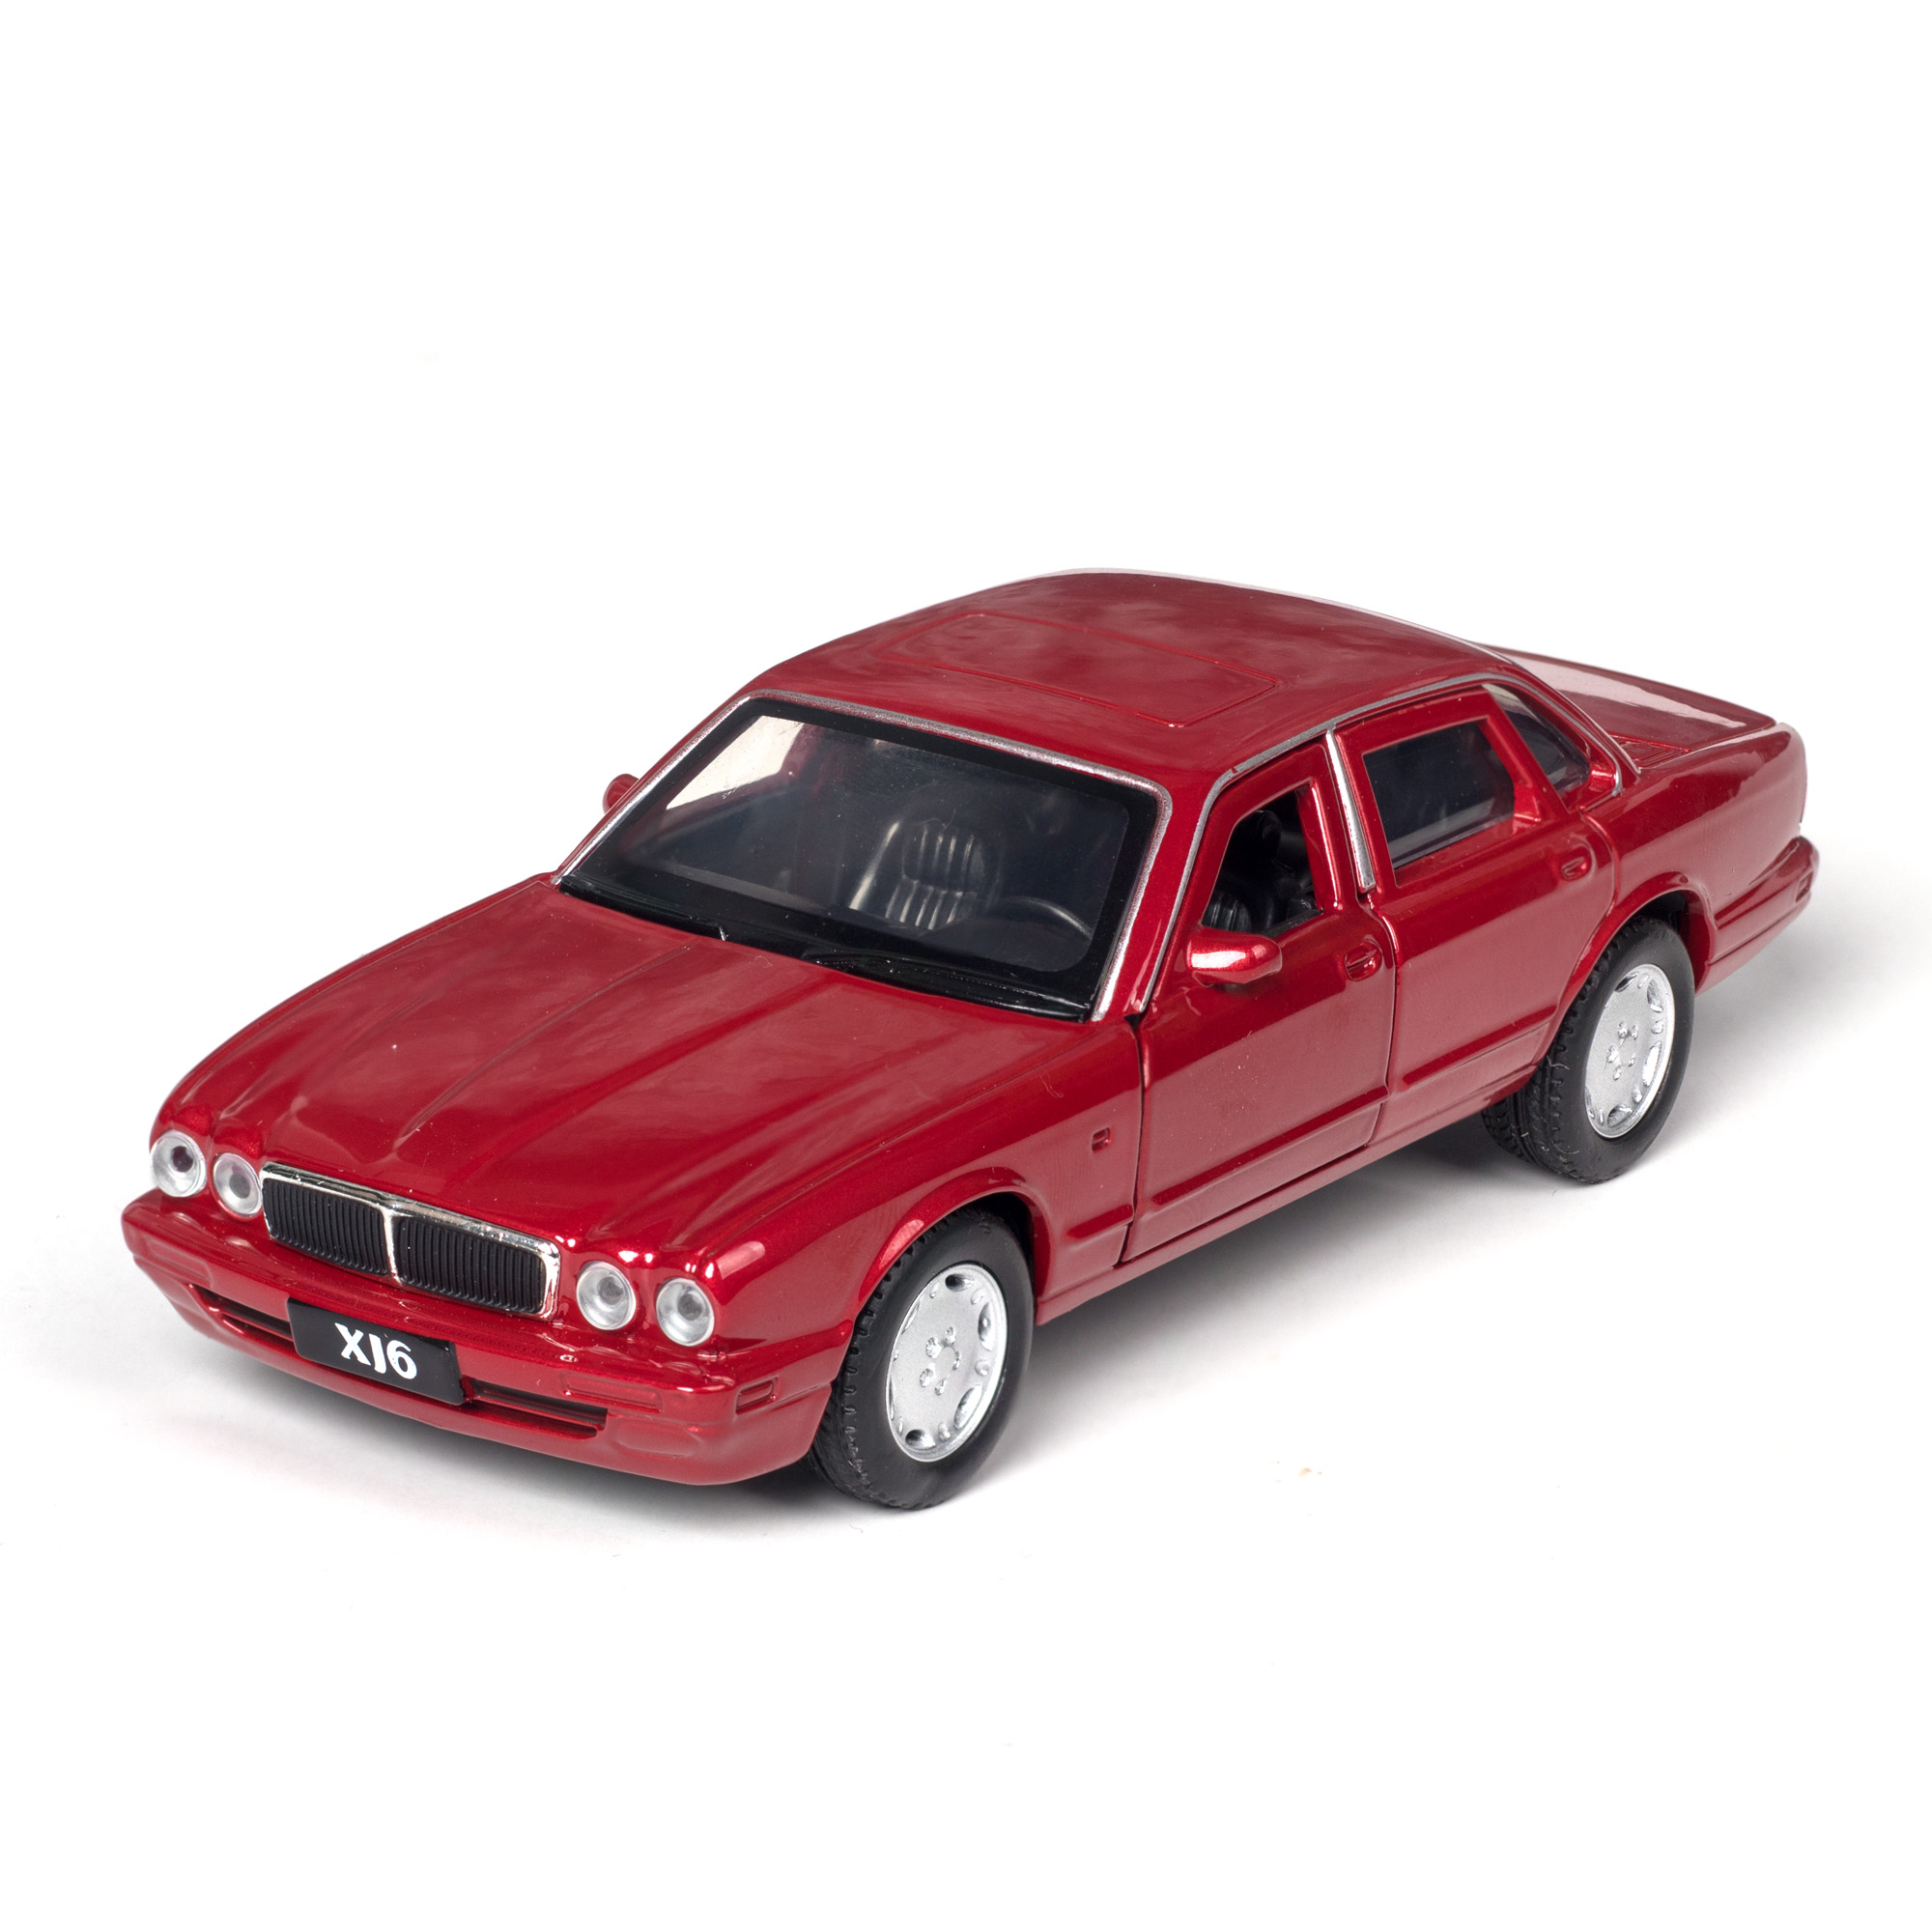 1:36 JAGUAR XJ6 Alloy Sports Car Model Diecast Super Racing Lifting Tail Wheel Pull Back For Children Car Toys Ornaments Gifts